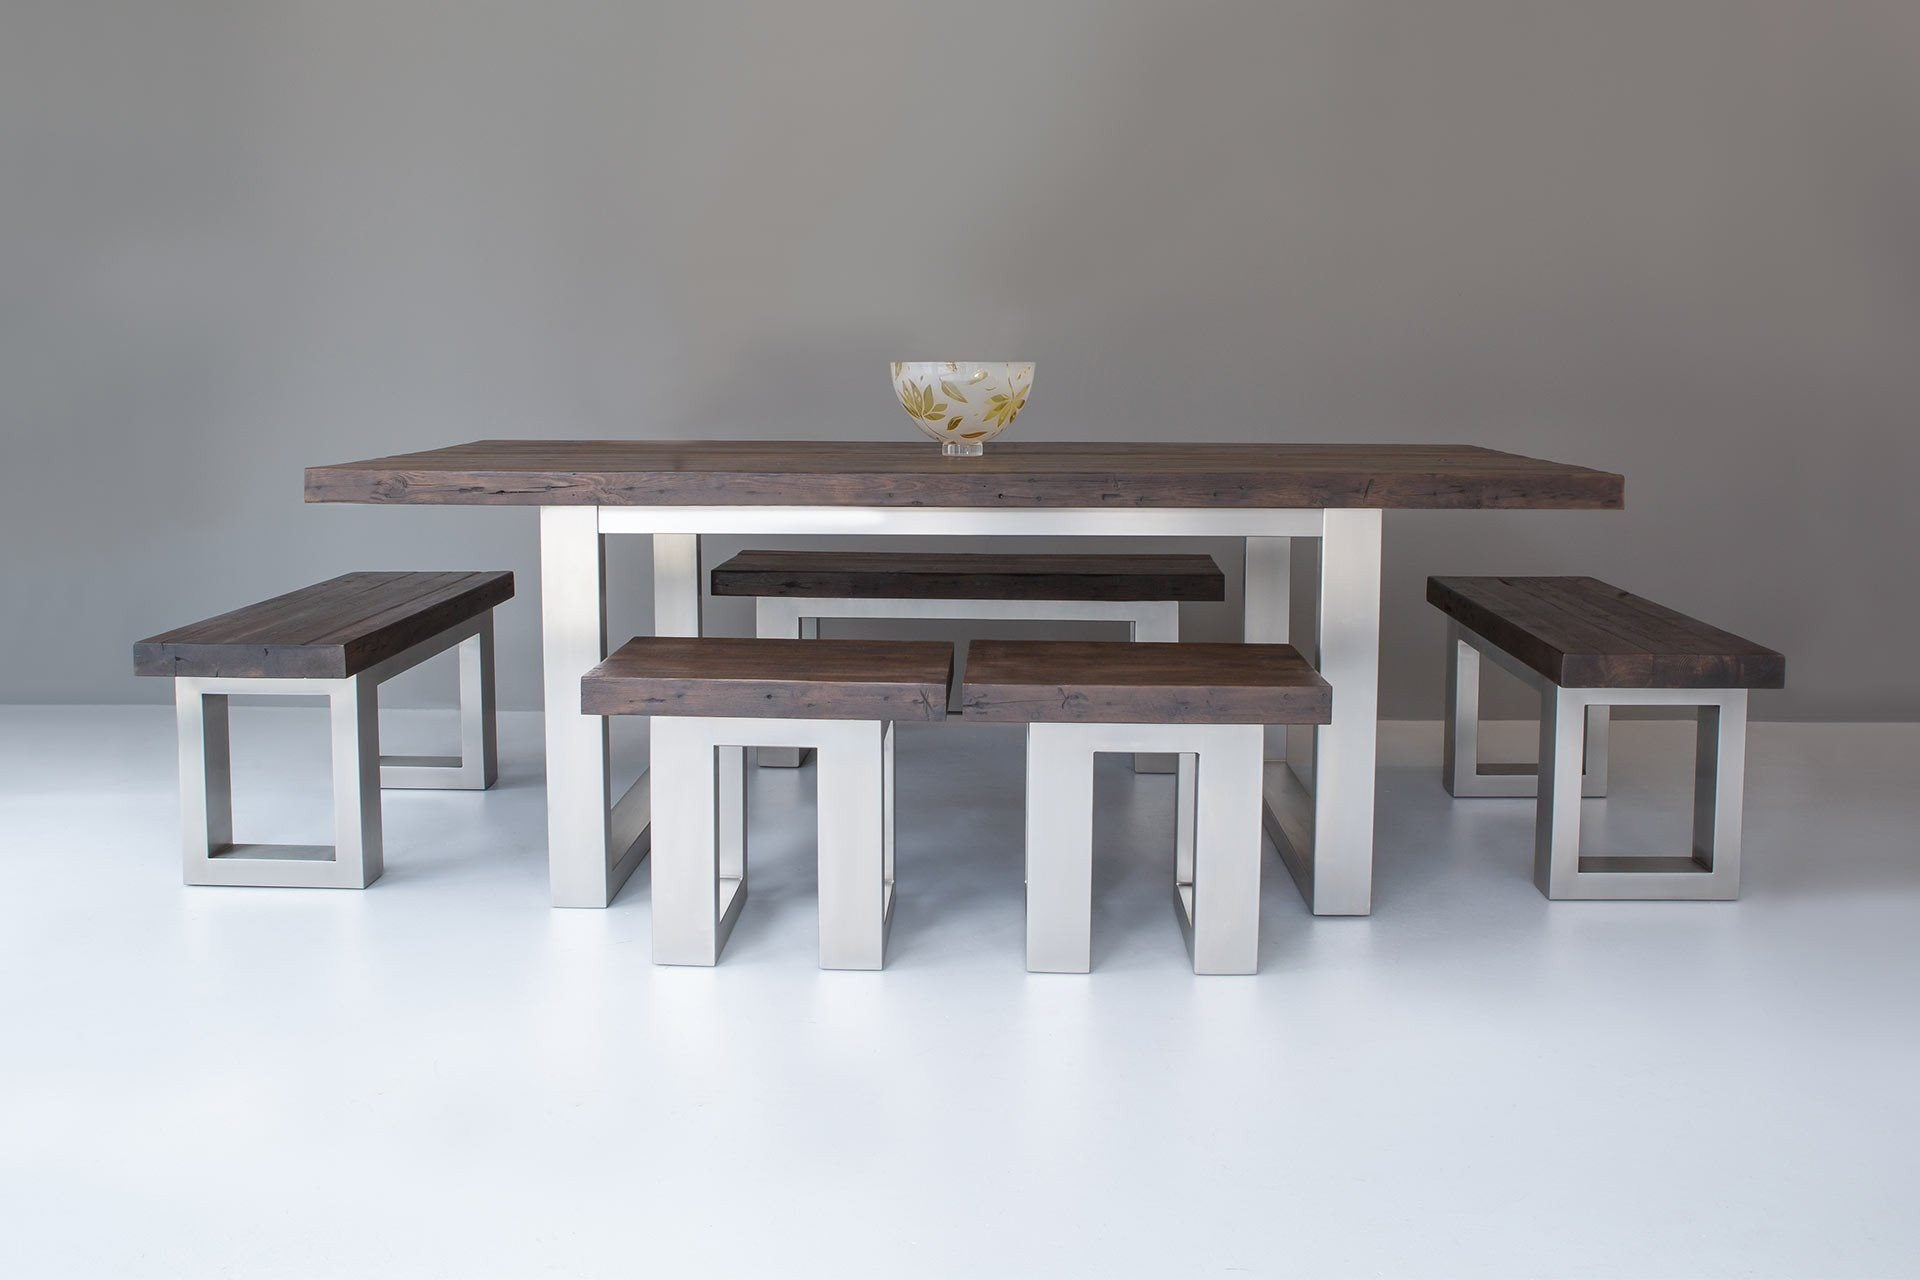 Classic Stools With 223cm Long Overhang Table & End Benches